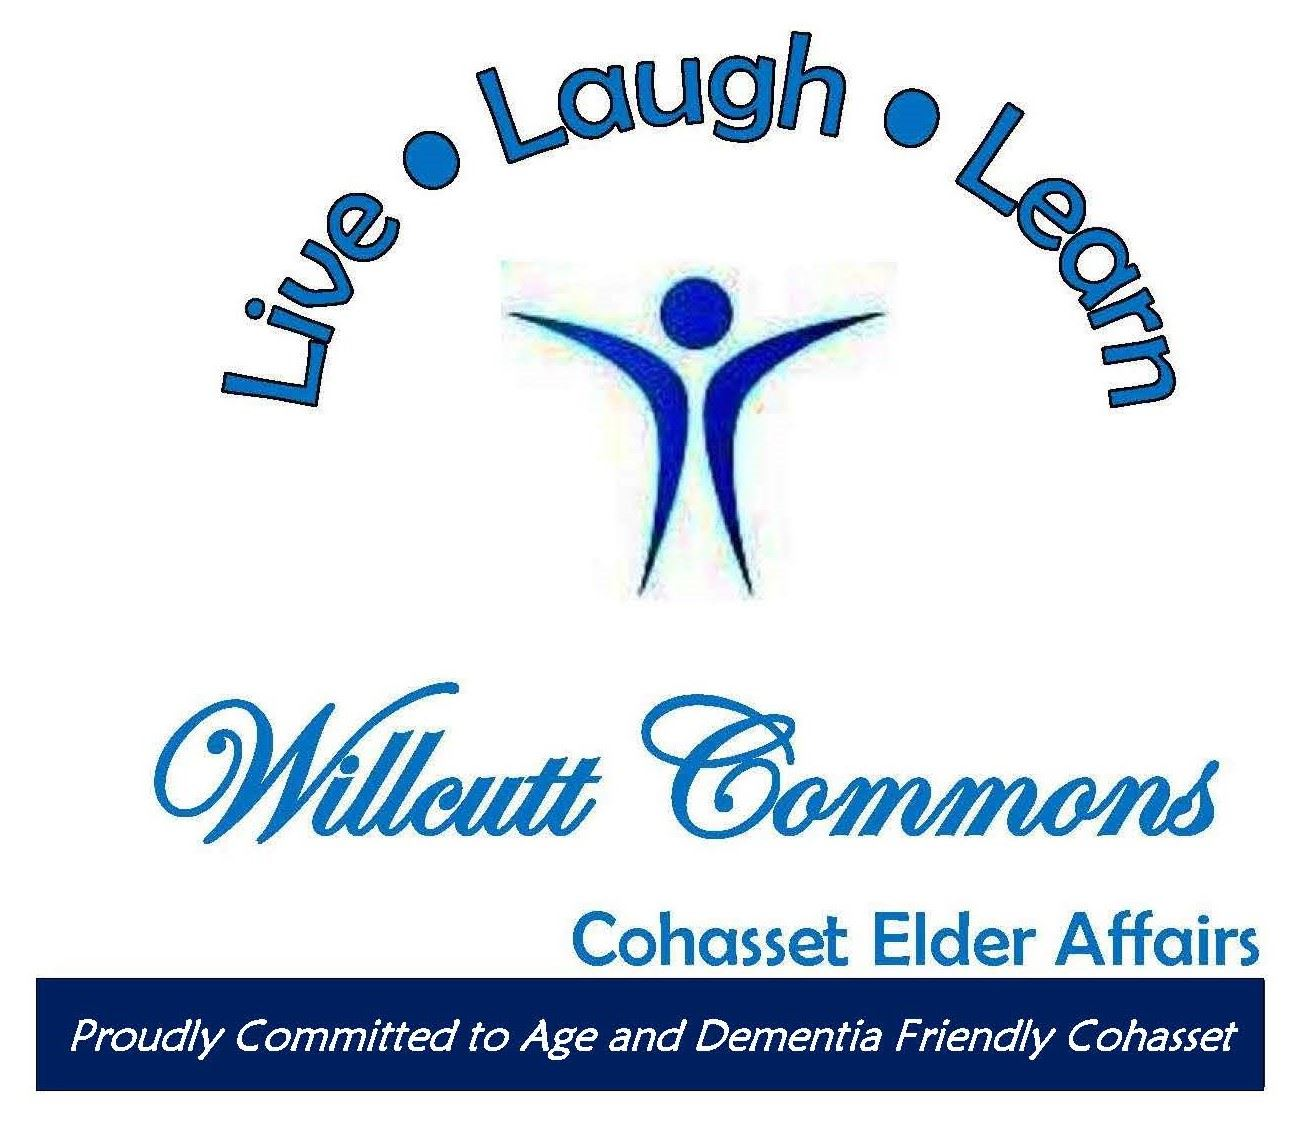 Cohasset Elder Affairs Proudly committed to age and dementia friendly Cohasset